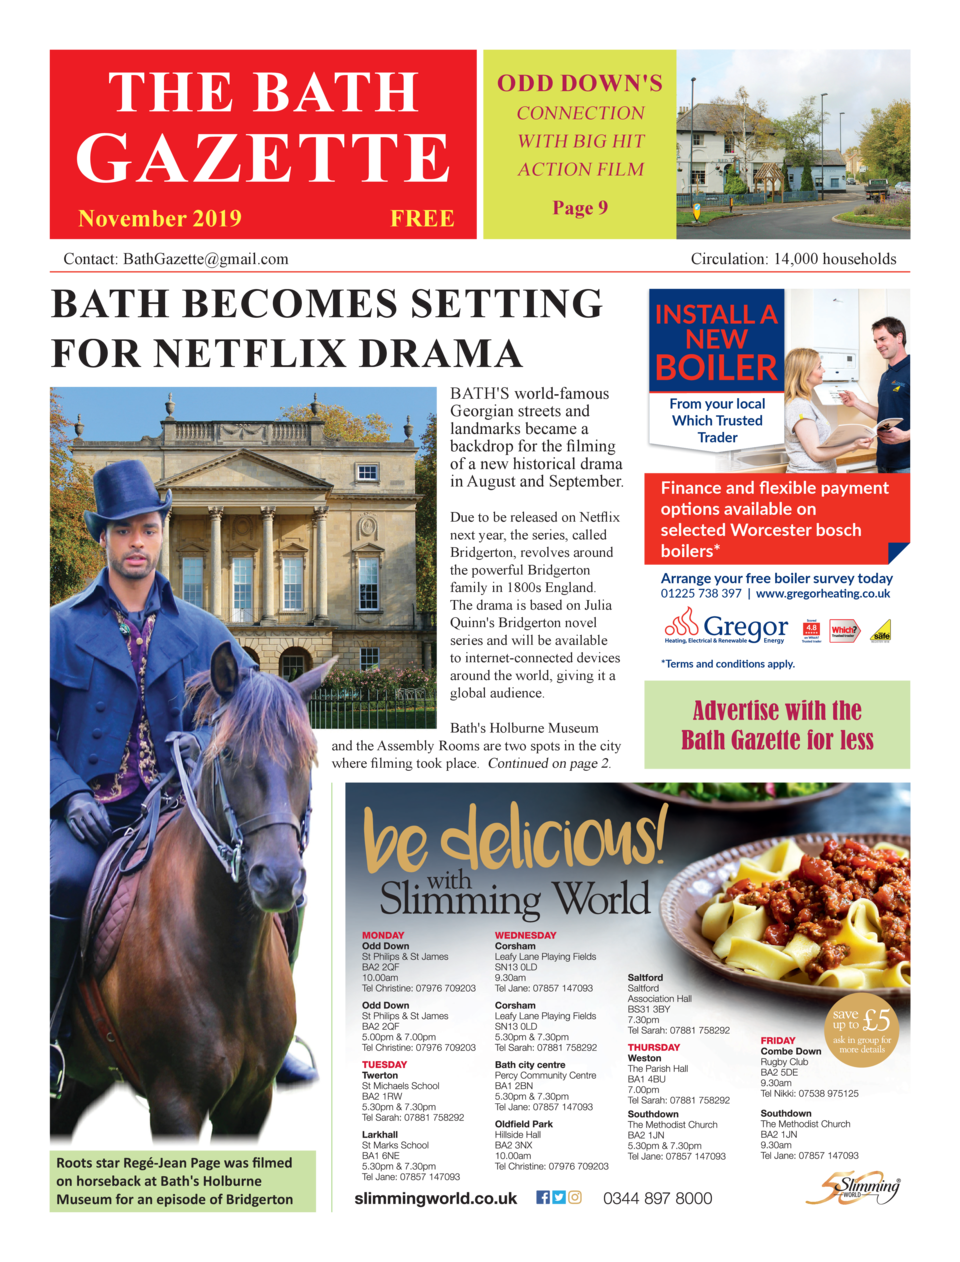 THE BATH  ODD DOWN S  GAZETTE November 2019  FREE  CONNECTION WITH BIG HIT ACTION FILM  Page 9  Contact  BathGazette gmail...